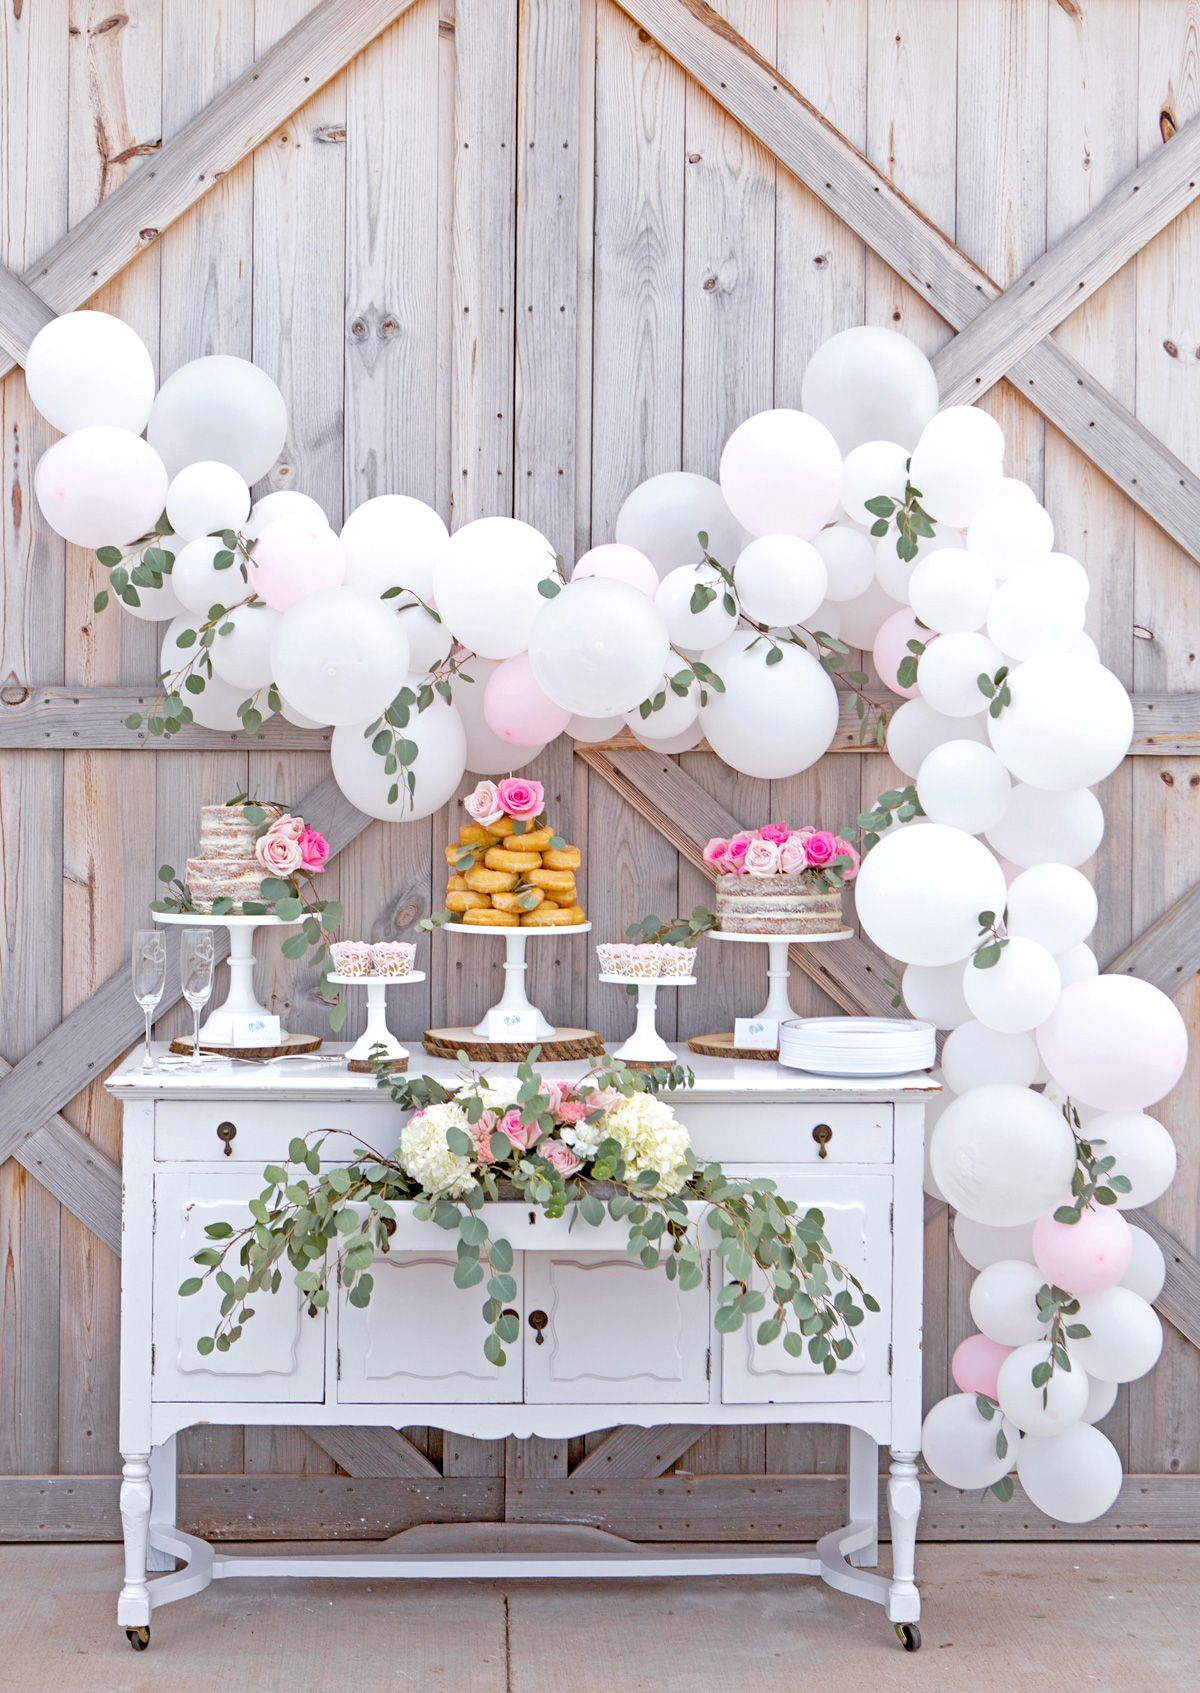 Gorgeous Rustic Barn wedding cake table with easy diy balloon garland.